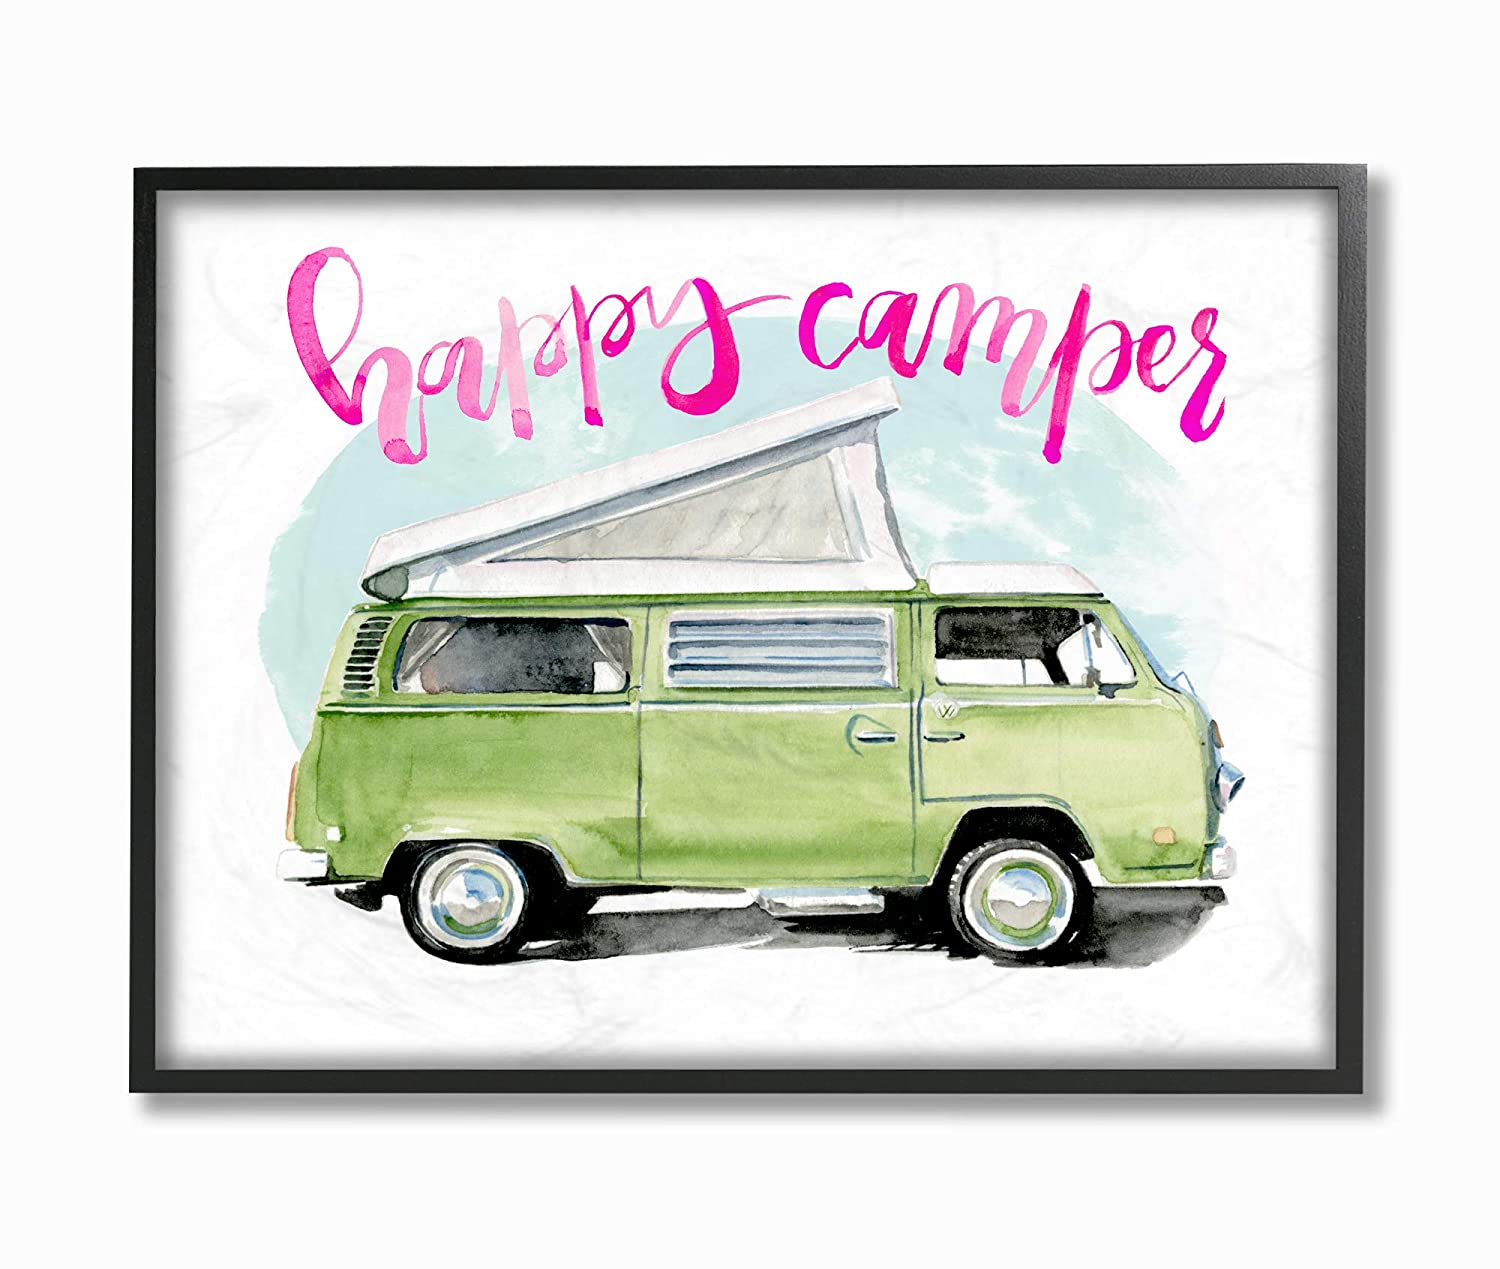 The Stupell Home Decor Happy Lime Green Camper Watercolor Framed Giclee Texturized Art 24 x 30 Multi-Color